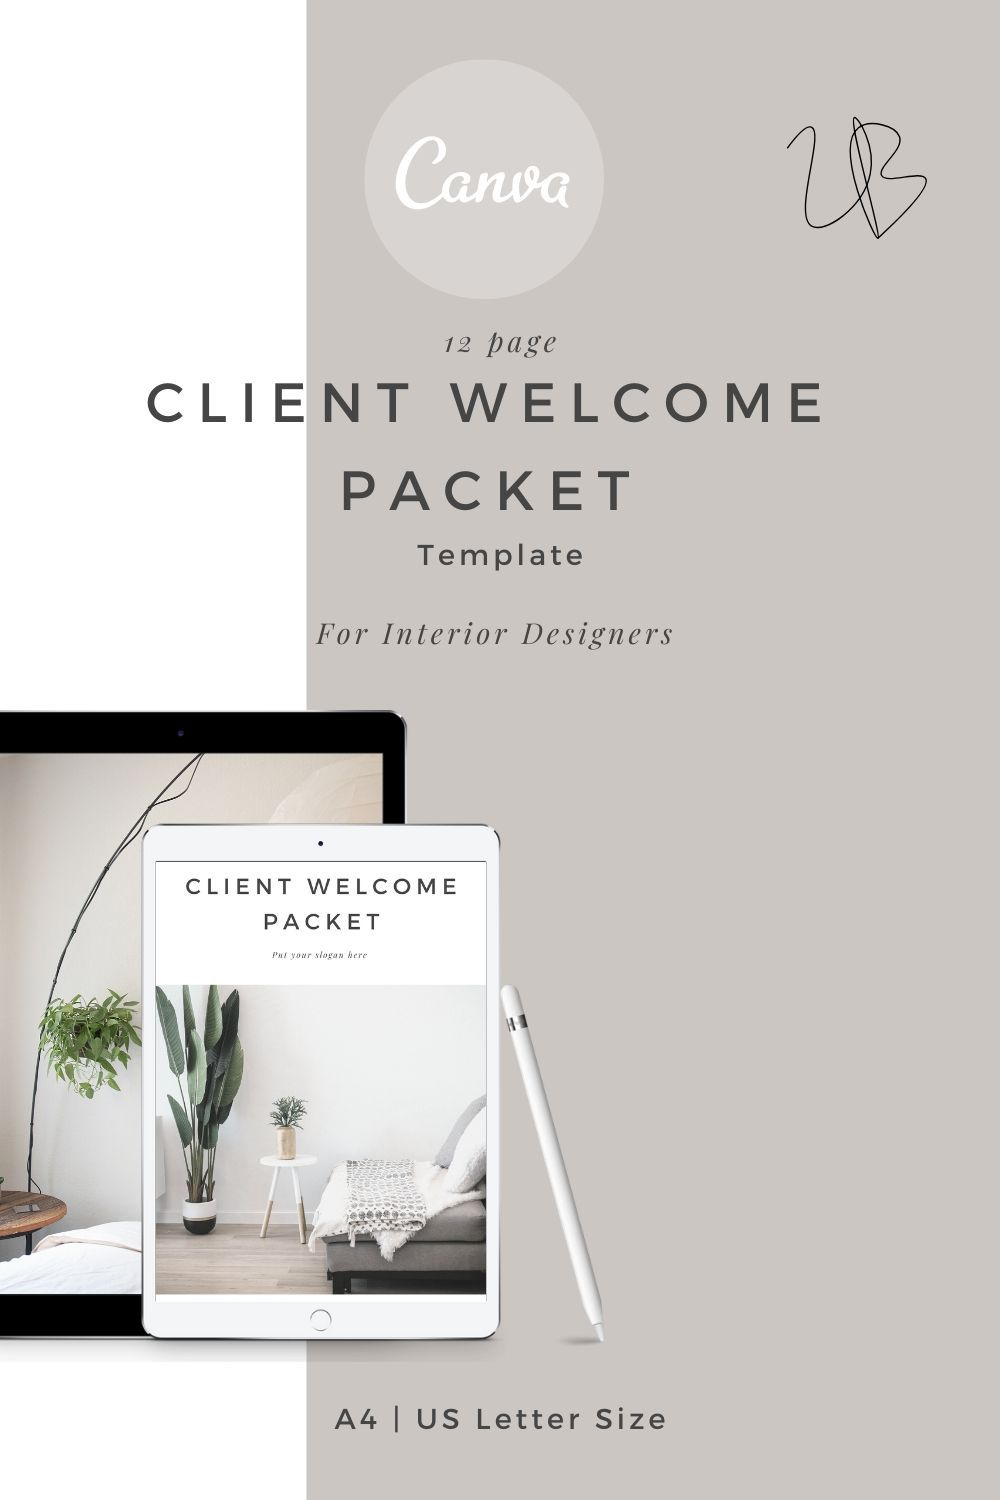 Client Welcome Packet Canva Template Client Intro Template Etsy In 2020 Interior Design Business Interior Design Process Design Clients